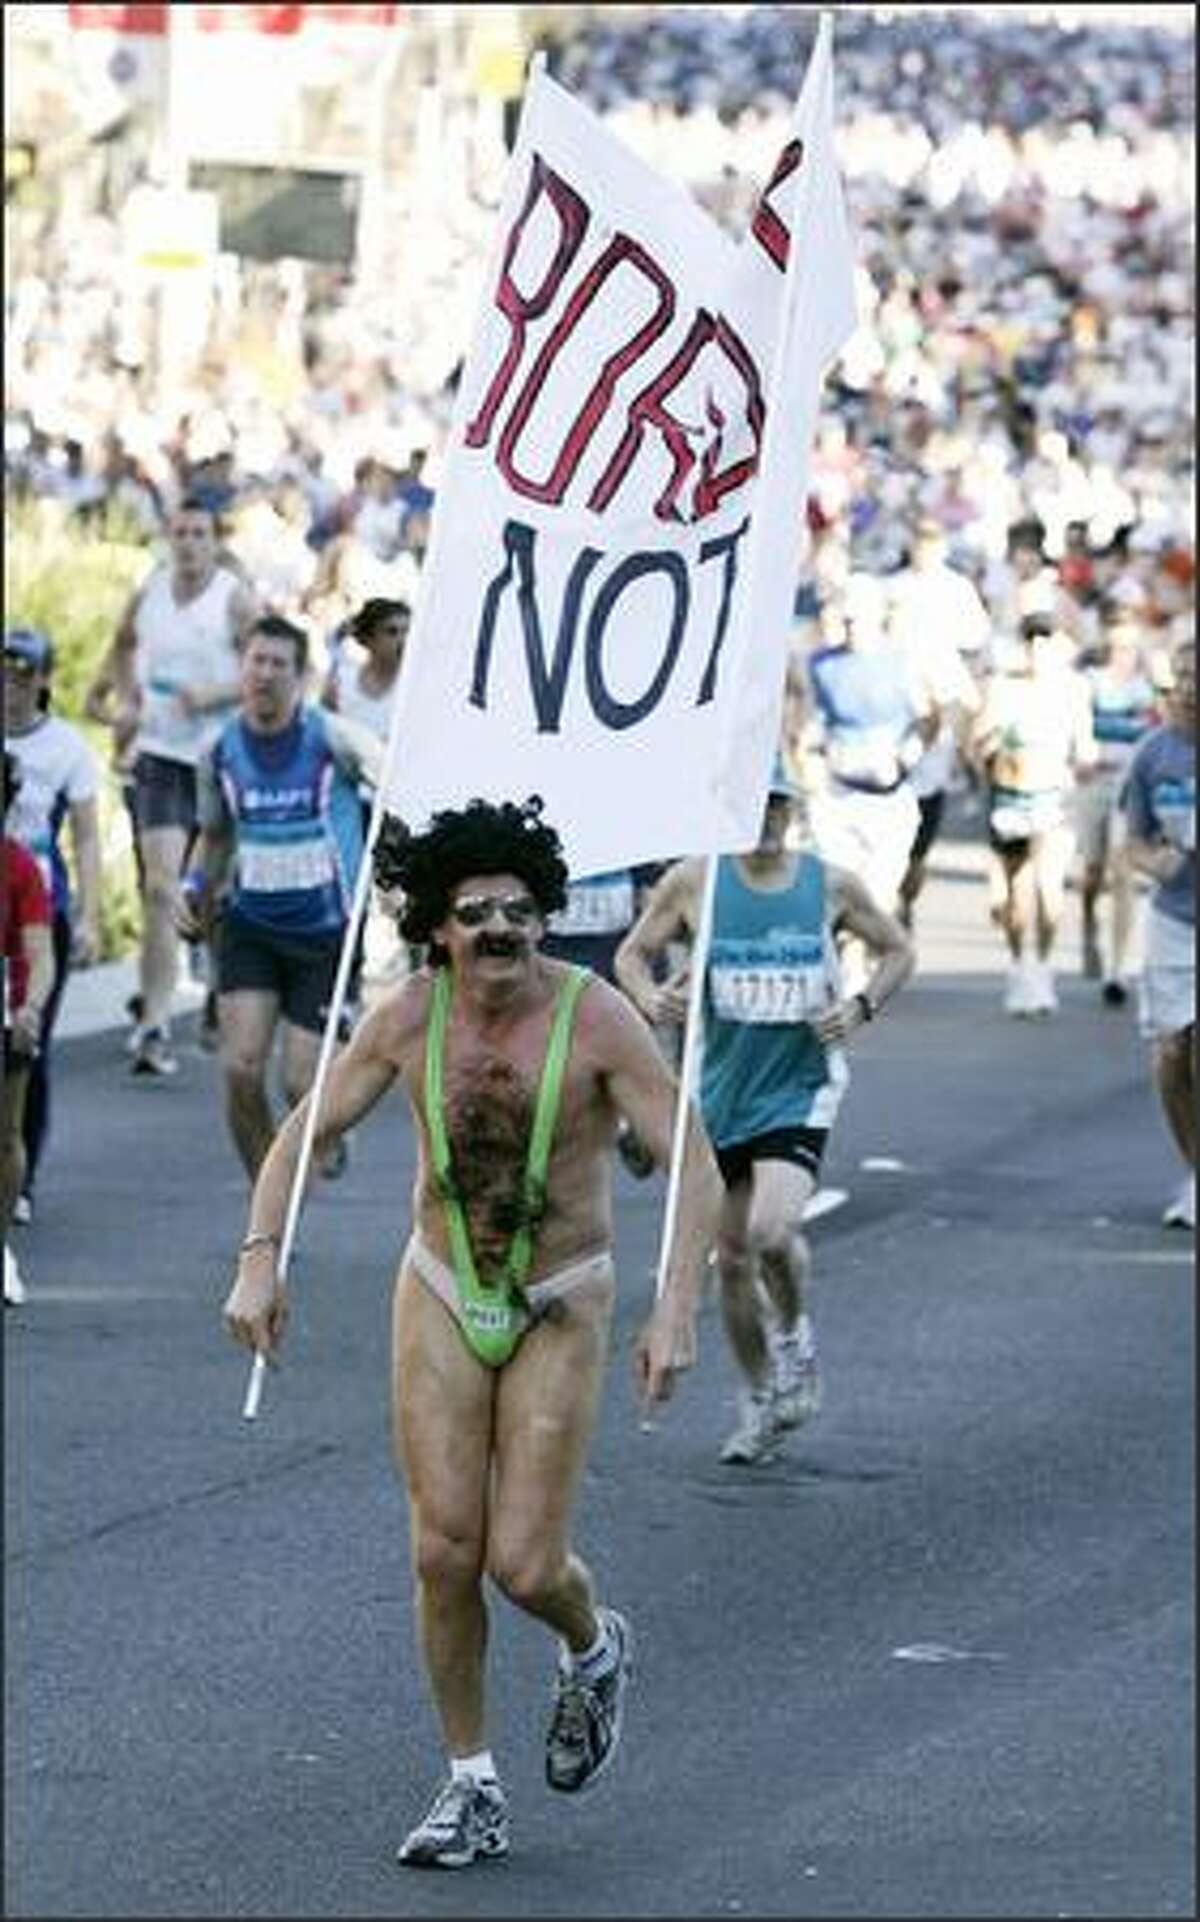 A man dressed as fictional movie character Borat, runs with thousands of other people through the streets of Sydney, Australia, Sunday, Aug. 12, 2007 during the annual City to Surf Run. Organizers estimate approximately 64,000 runners have entered this year's event. AP Photo/Rob Griffith